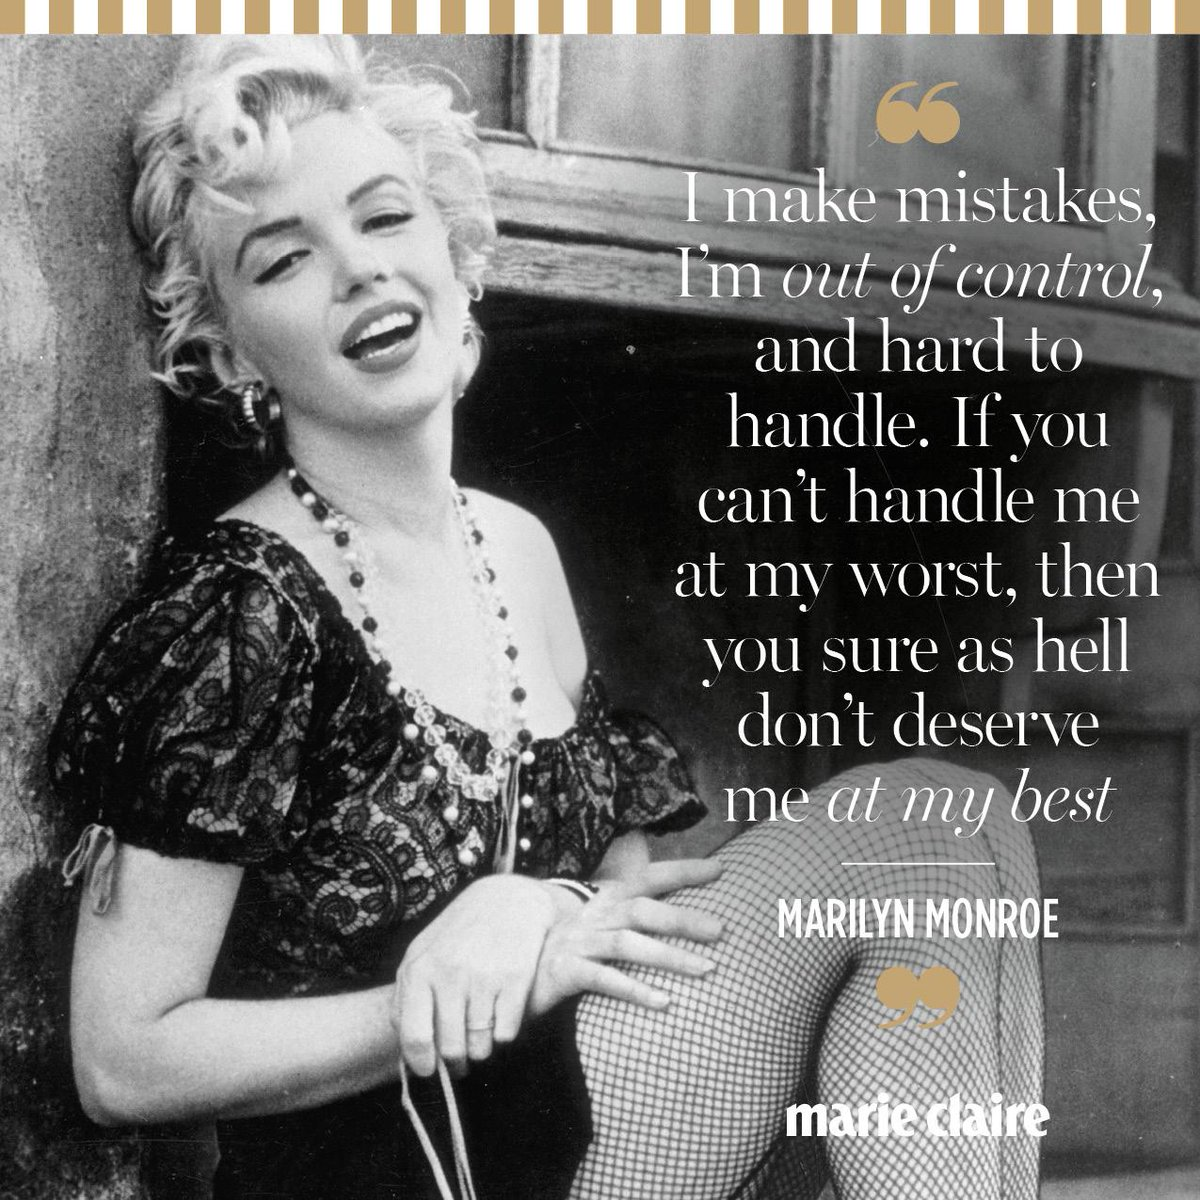 Marilyn Monroe New Years Quotes: Today Would Have Been Marilyn Monroe's 89th Birthday